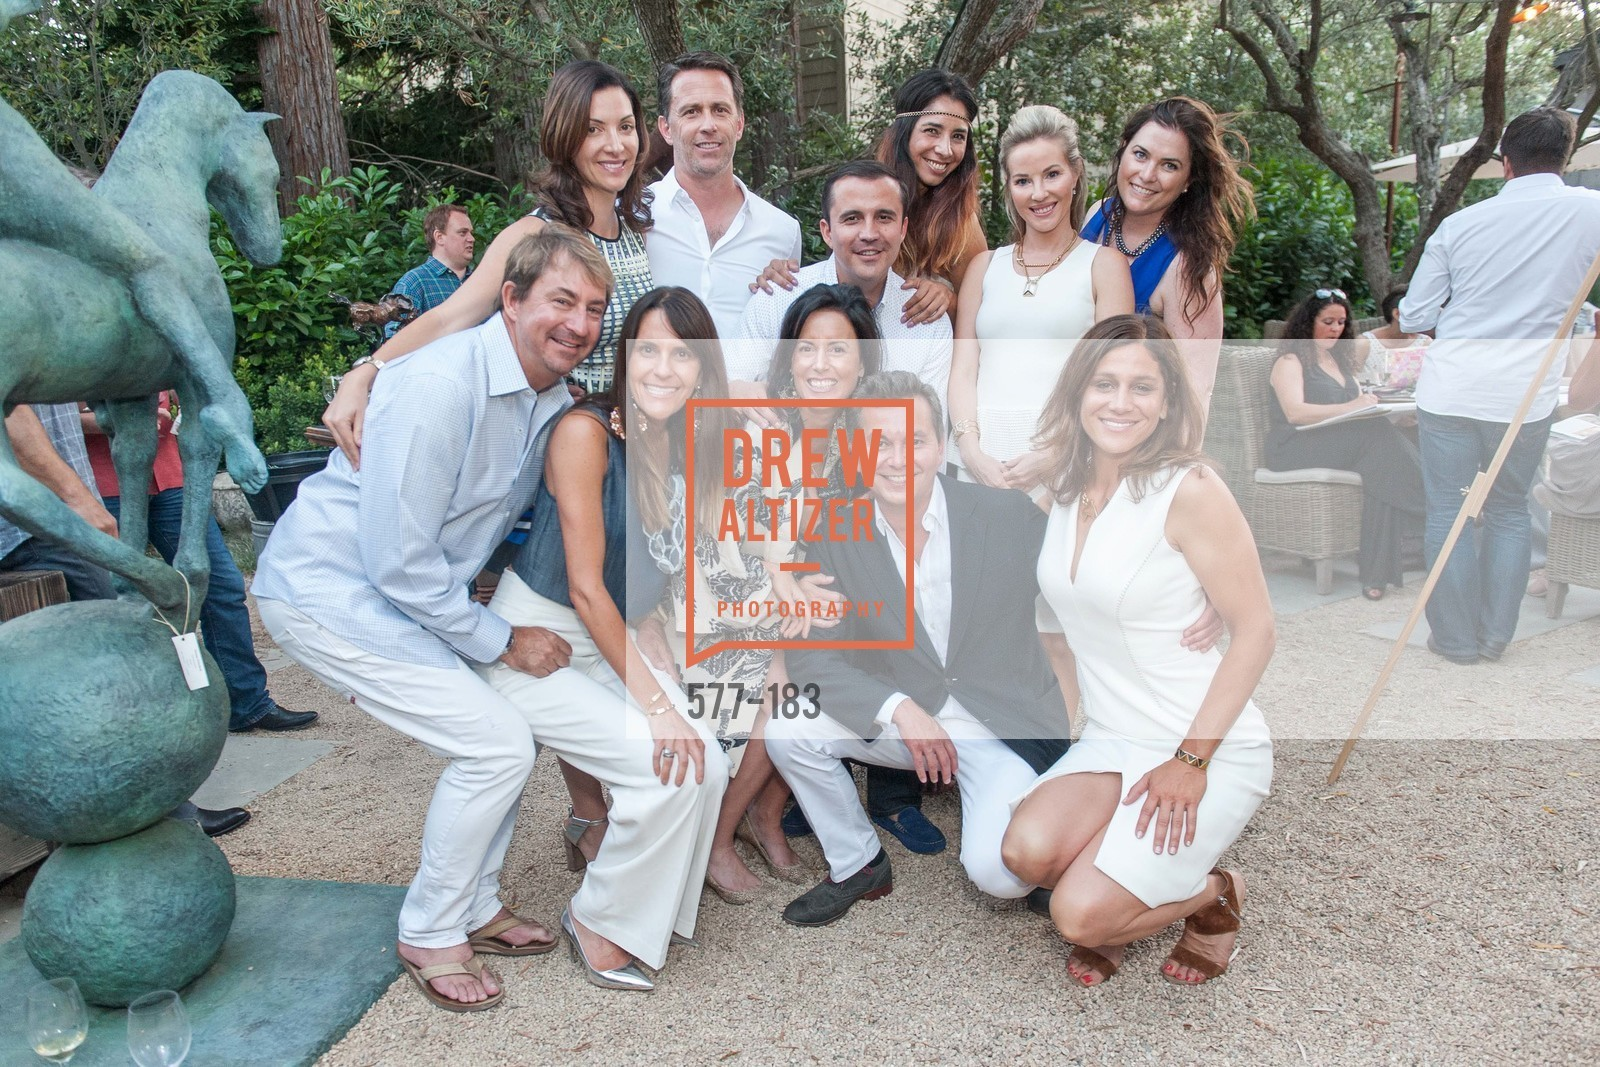 Nadine Curtis, Hillary Marino, Andy Ryan, Jorge Jaramillo, Tara Schon, Michael Uytengsu, Karina Barrionuevo, Sarah Collins, Jenn Hagan, Elizabeth Welborn, Oyster Cup Polo Tournament Preview Party Hosted by Cerro Pampa Polo Club and Stick & Ball, Ma(i)sonry. 6711 Washington St, June 25th, 2015,Drew Altizer, Drew Altizer Photography, full-service agency, private events, San Francisco photographer, photographer california